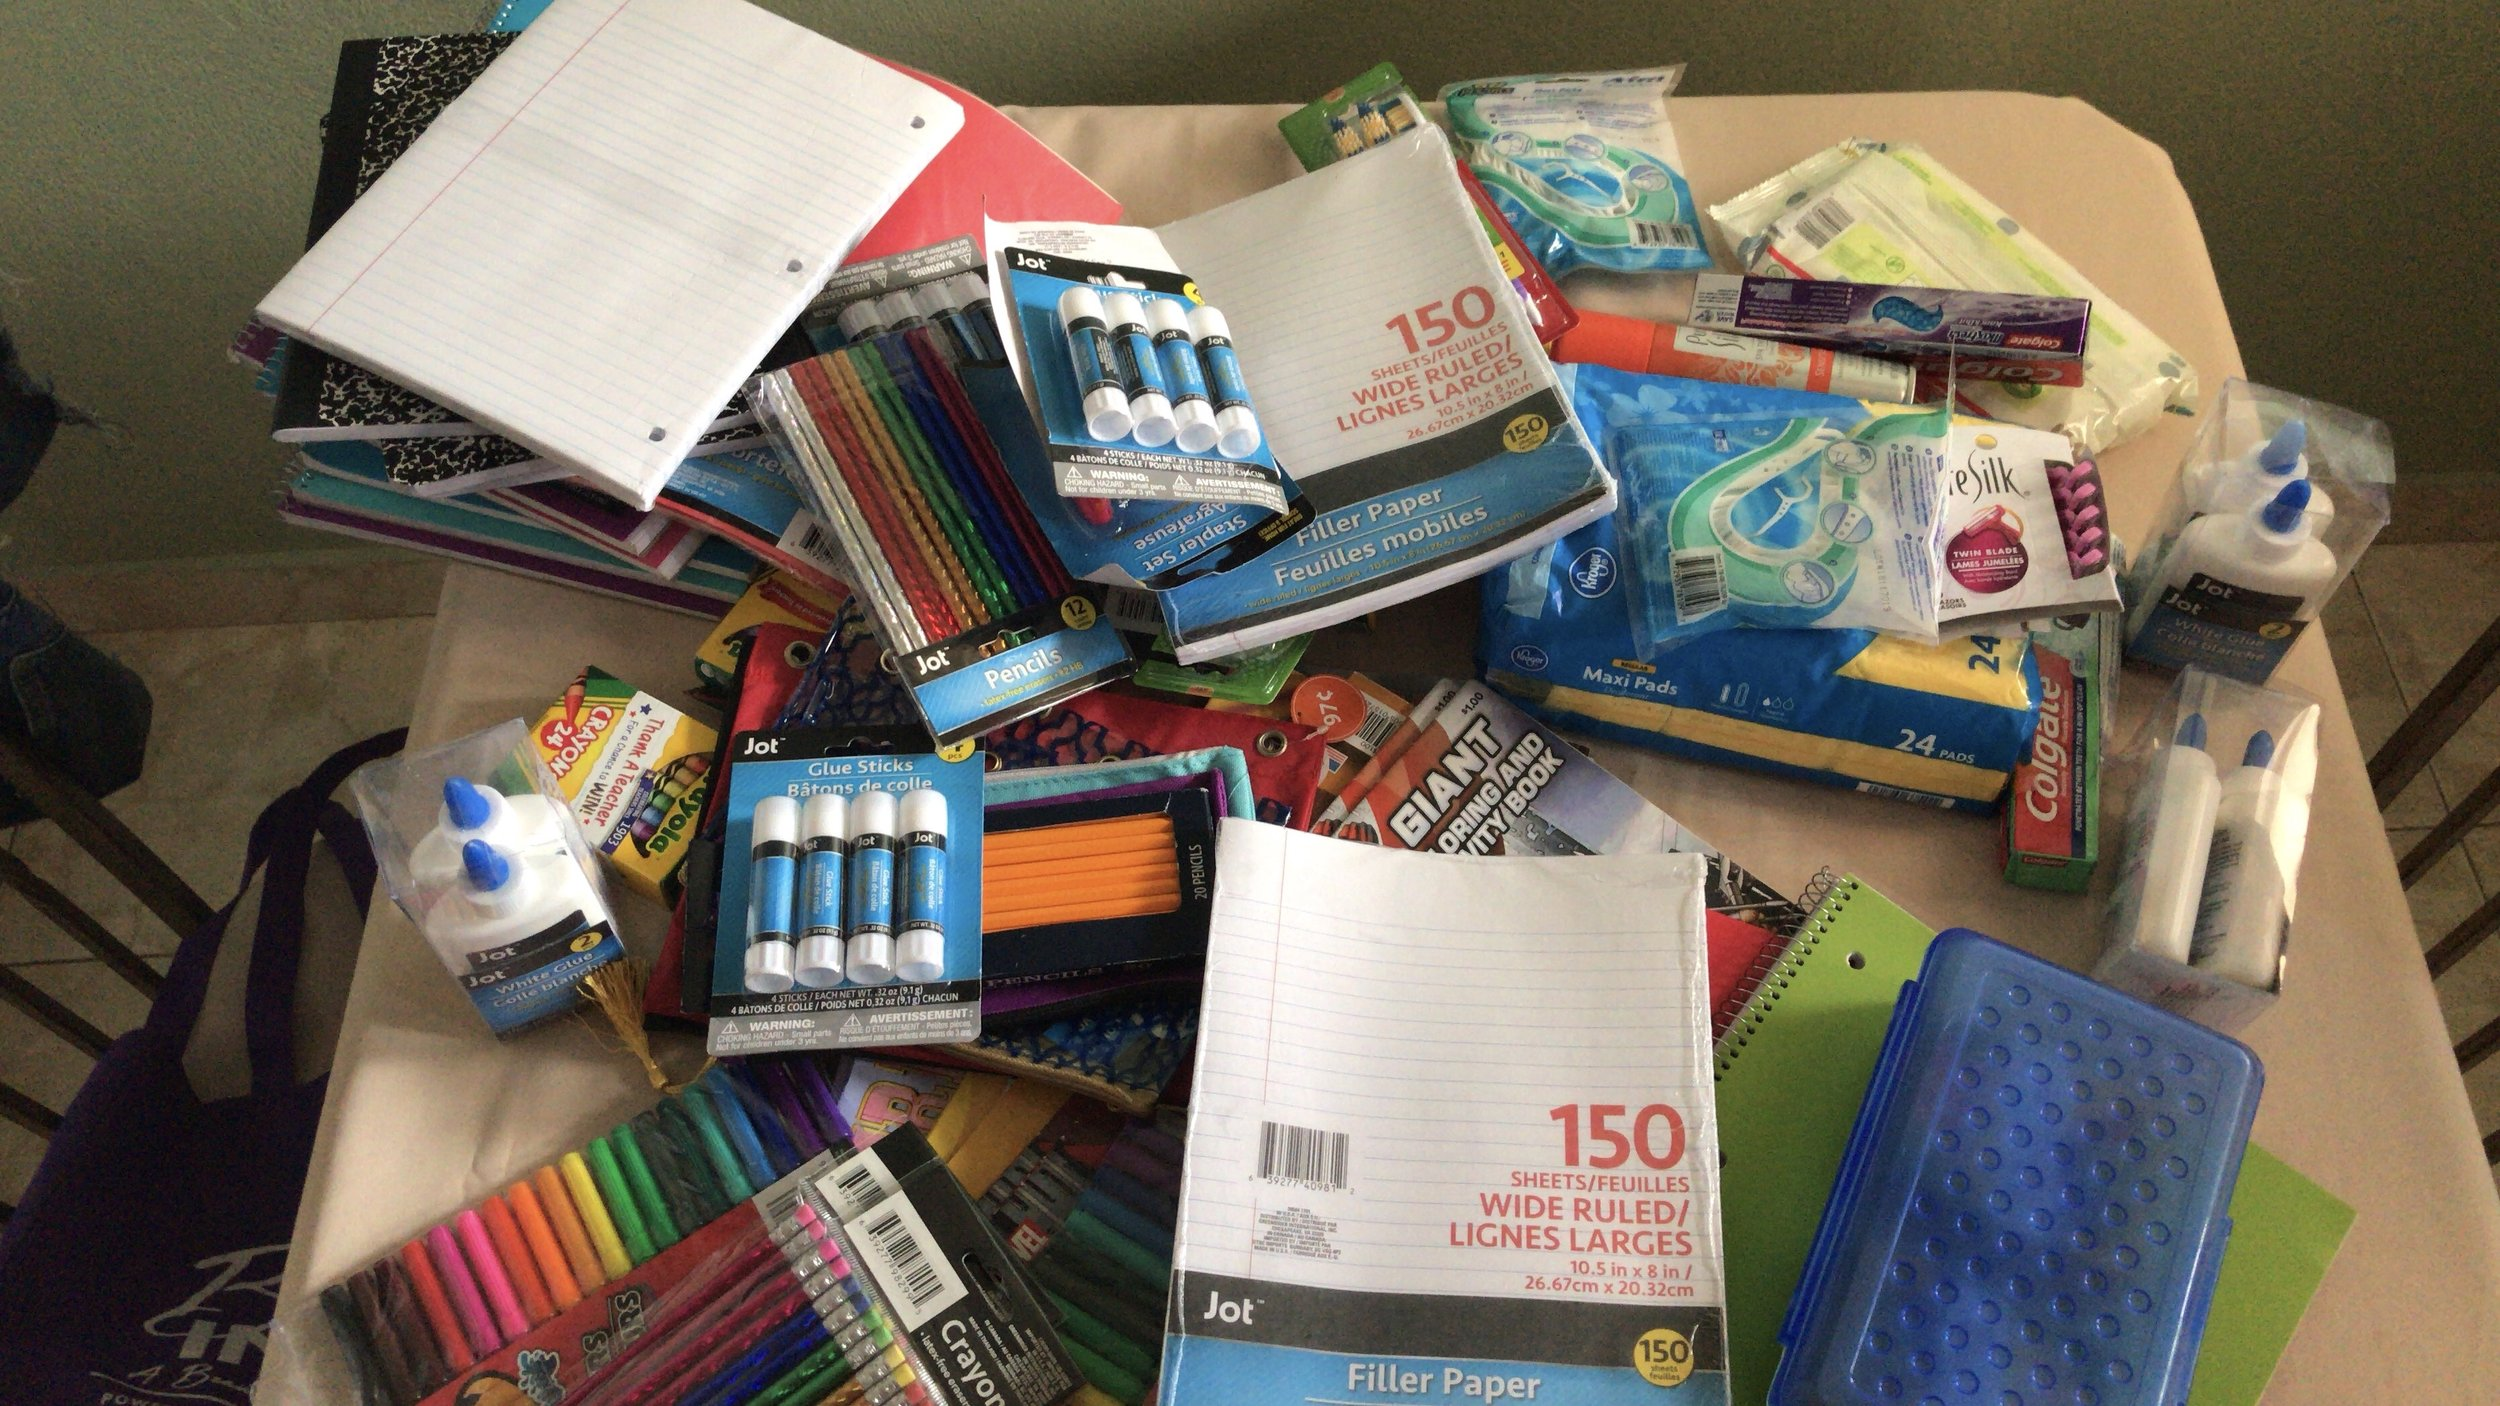 School Supplies - Destination Impact has donated notebooks, paper, folders, crayons, pencils, pens, books, coloring books, markers to children in need.